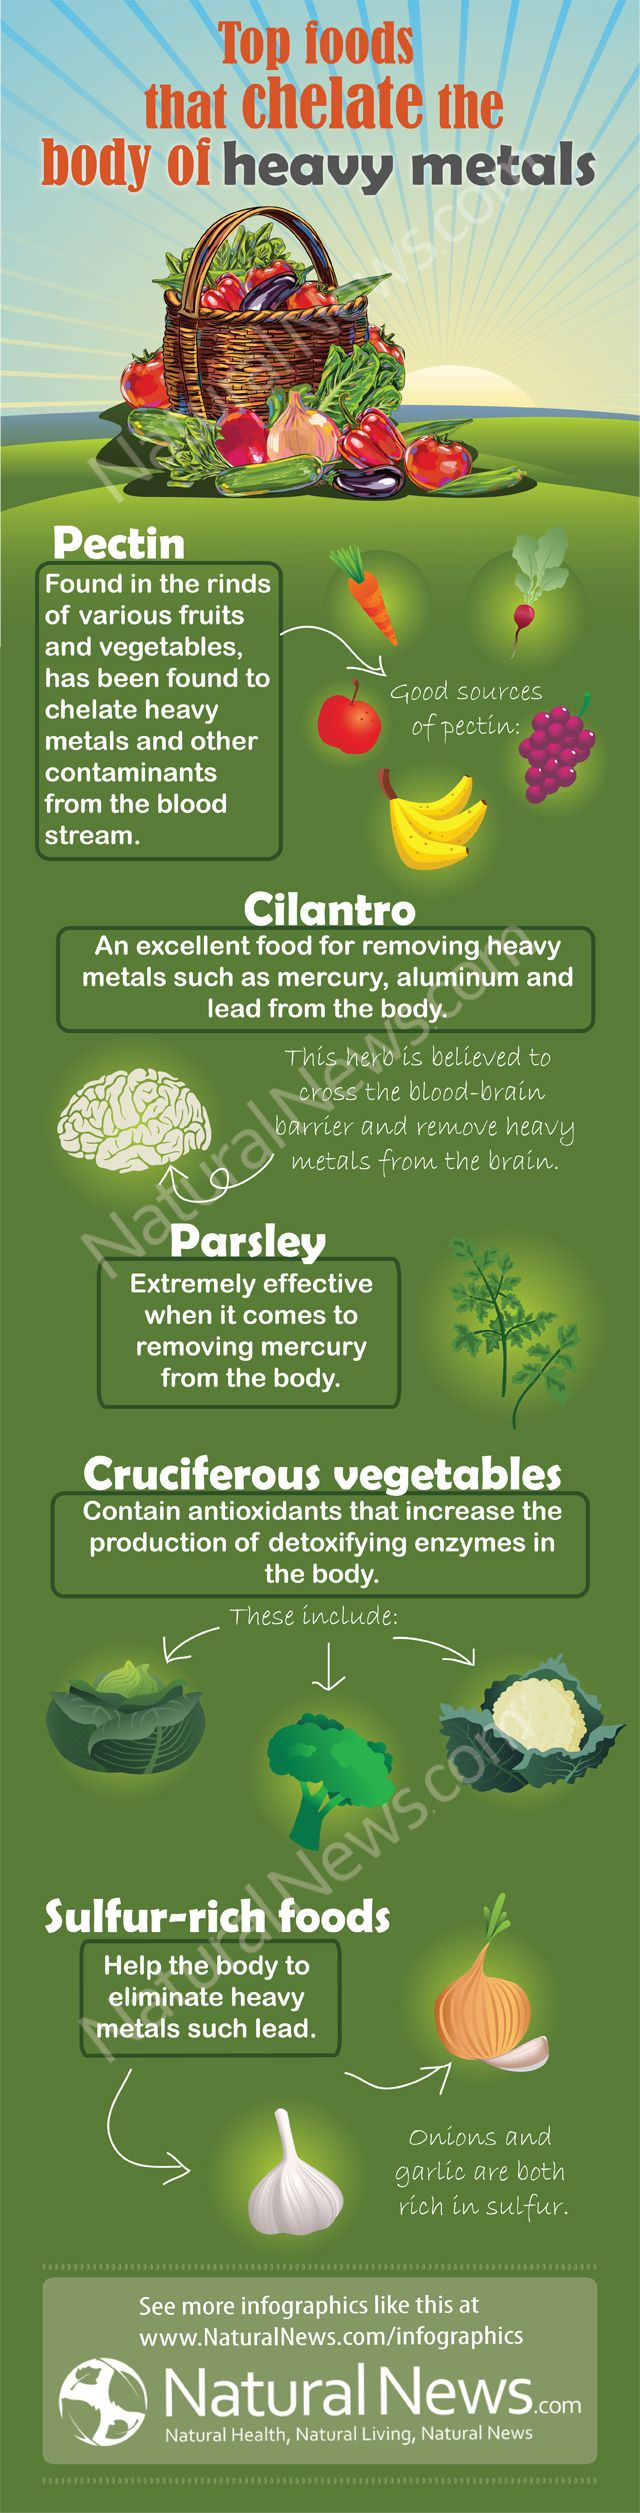 Top Foods that Chelate the Body of Heavy Metals.